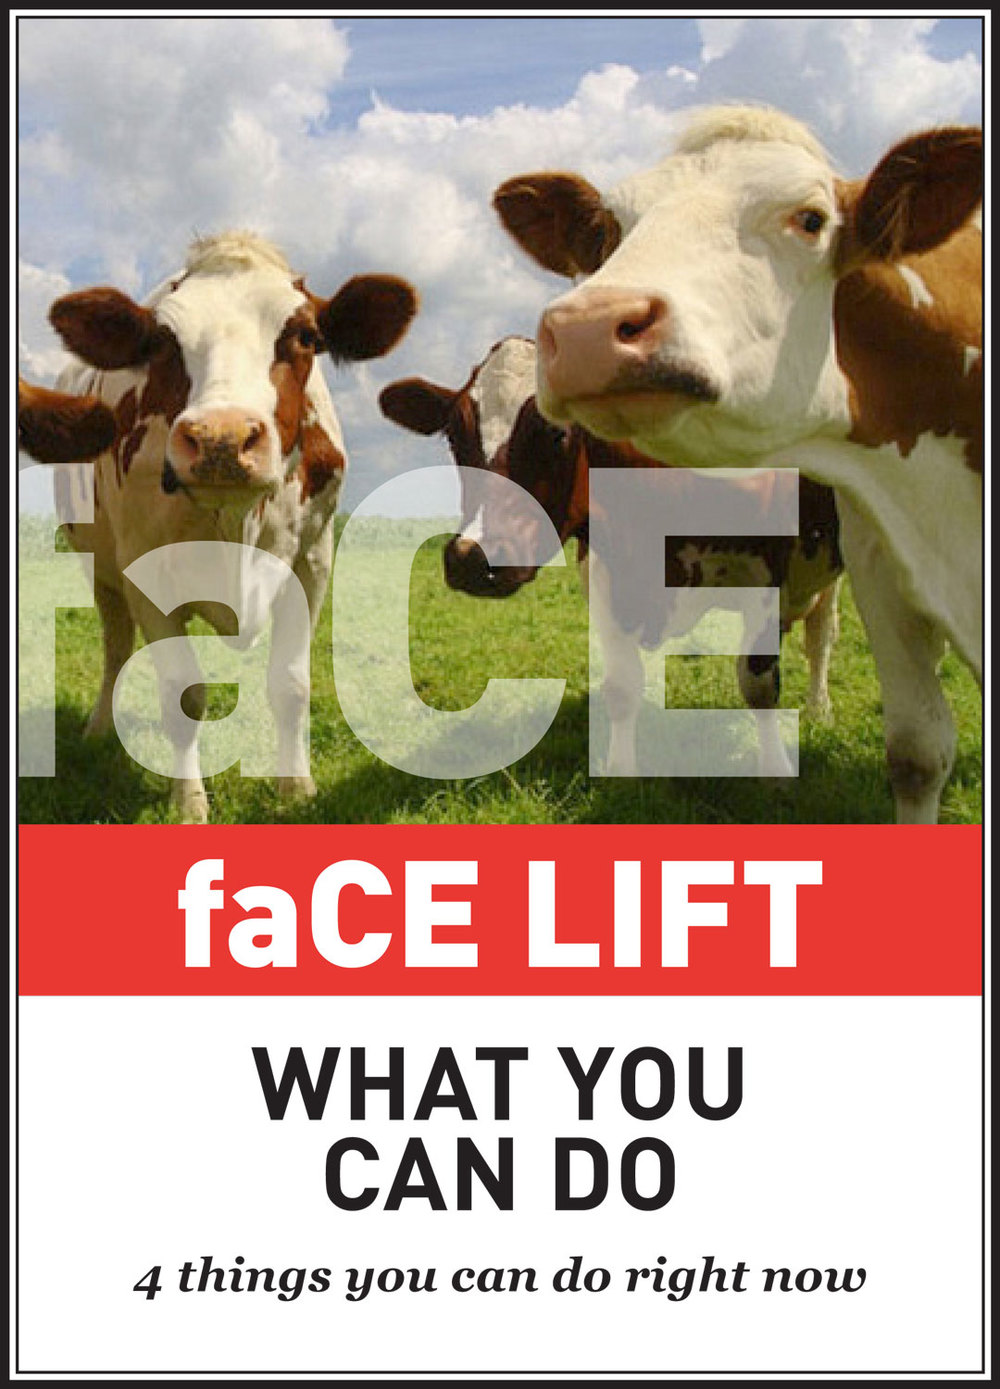 faCEs-IntroBlocks-LIFT.jpg